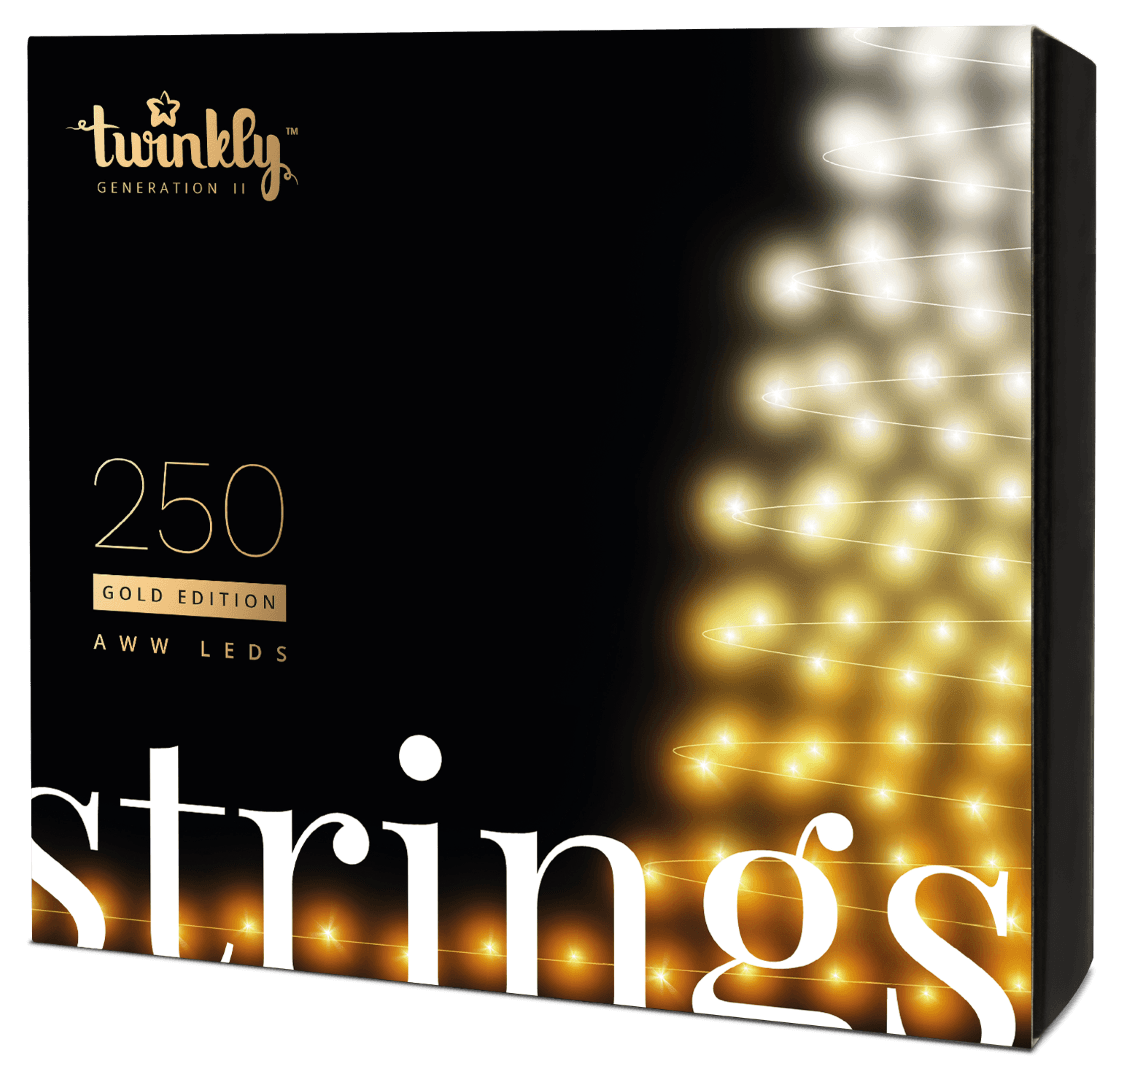 Twinkly Gold Edition - 250 AWW LEDs Lights String - Generation II